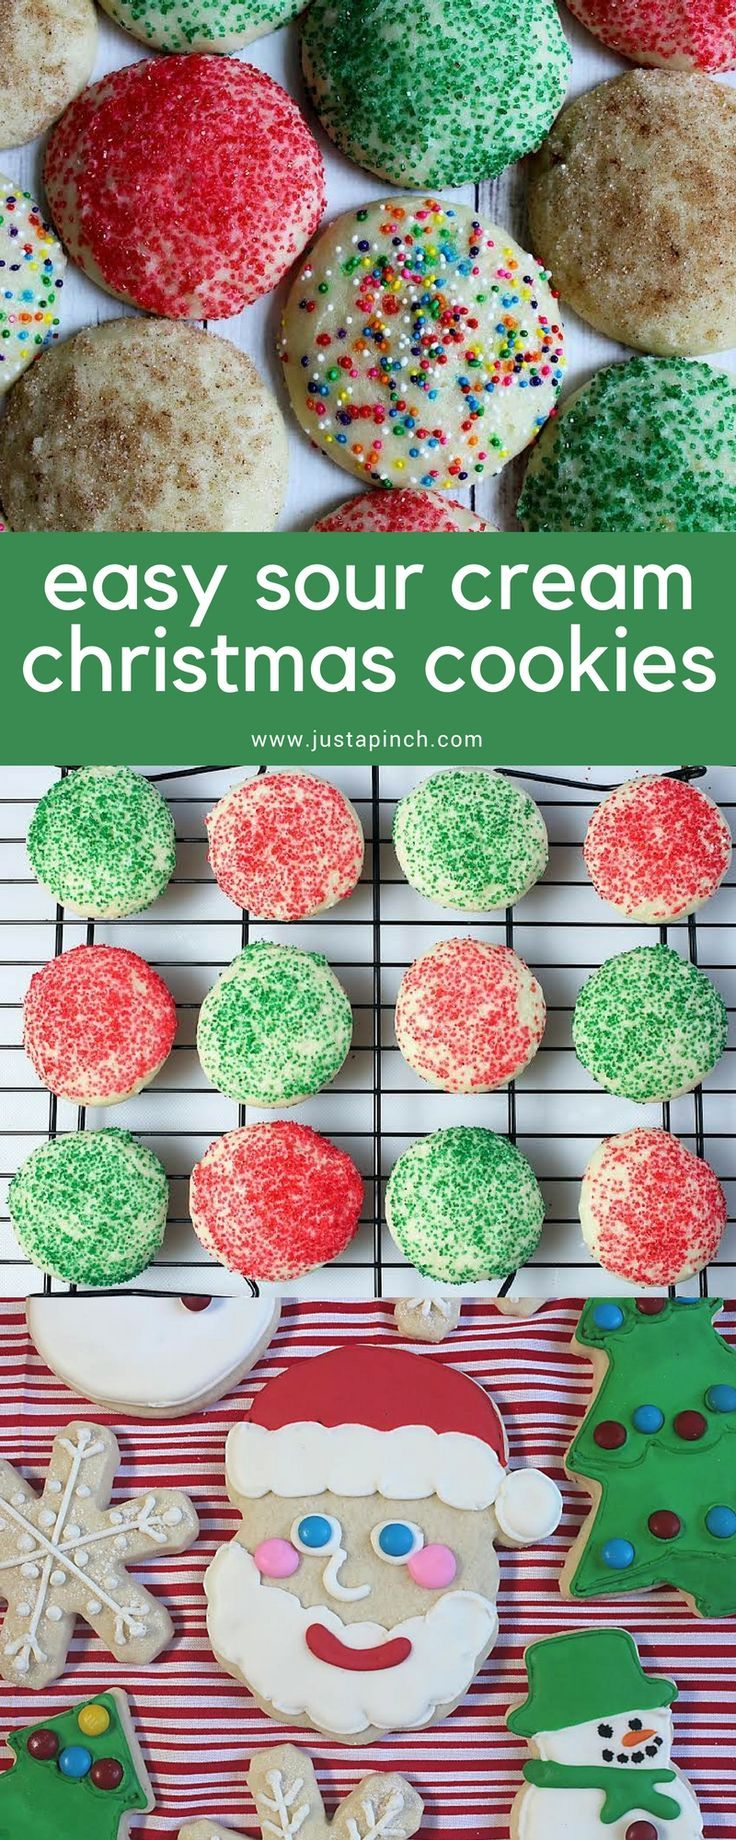 Mom Mom Bessie S Sour Cream Cookies Recipe Christmas Cookies Easy Sour Cream Cookies Sour Cream